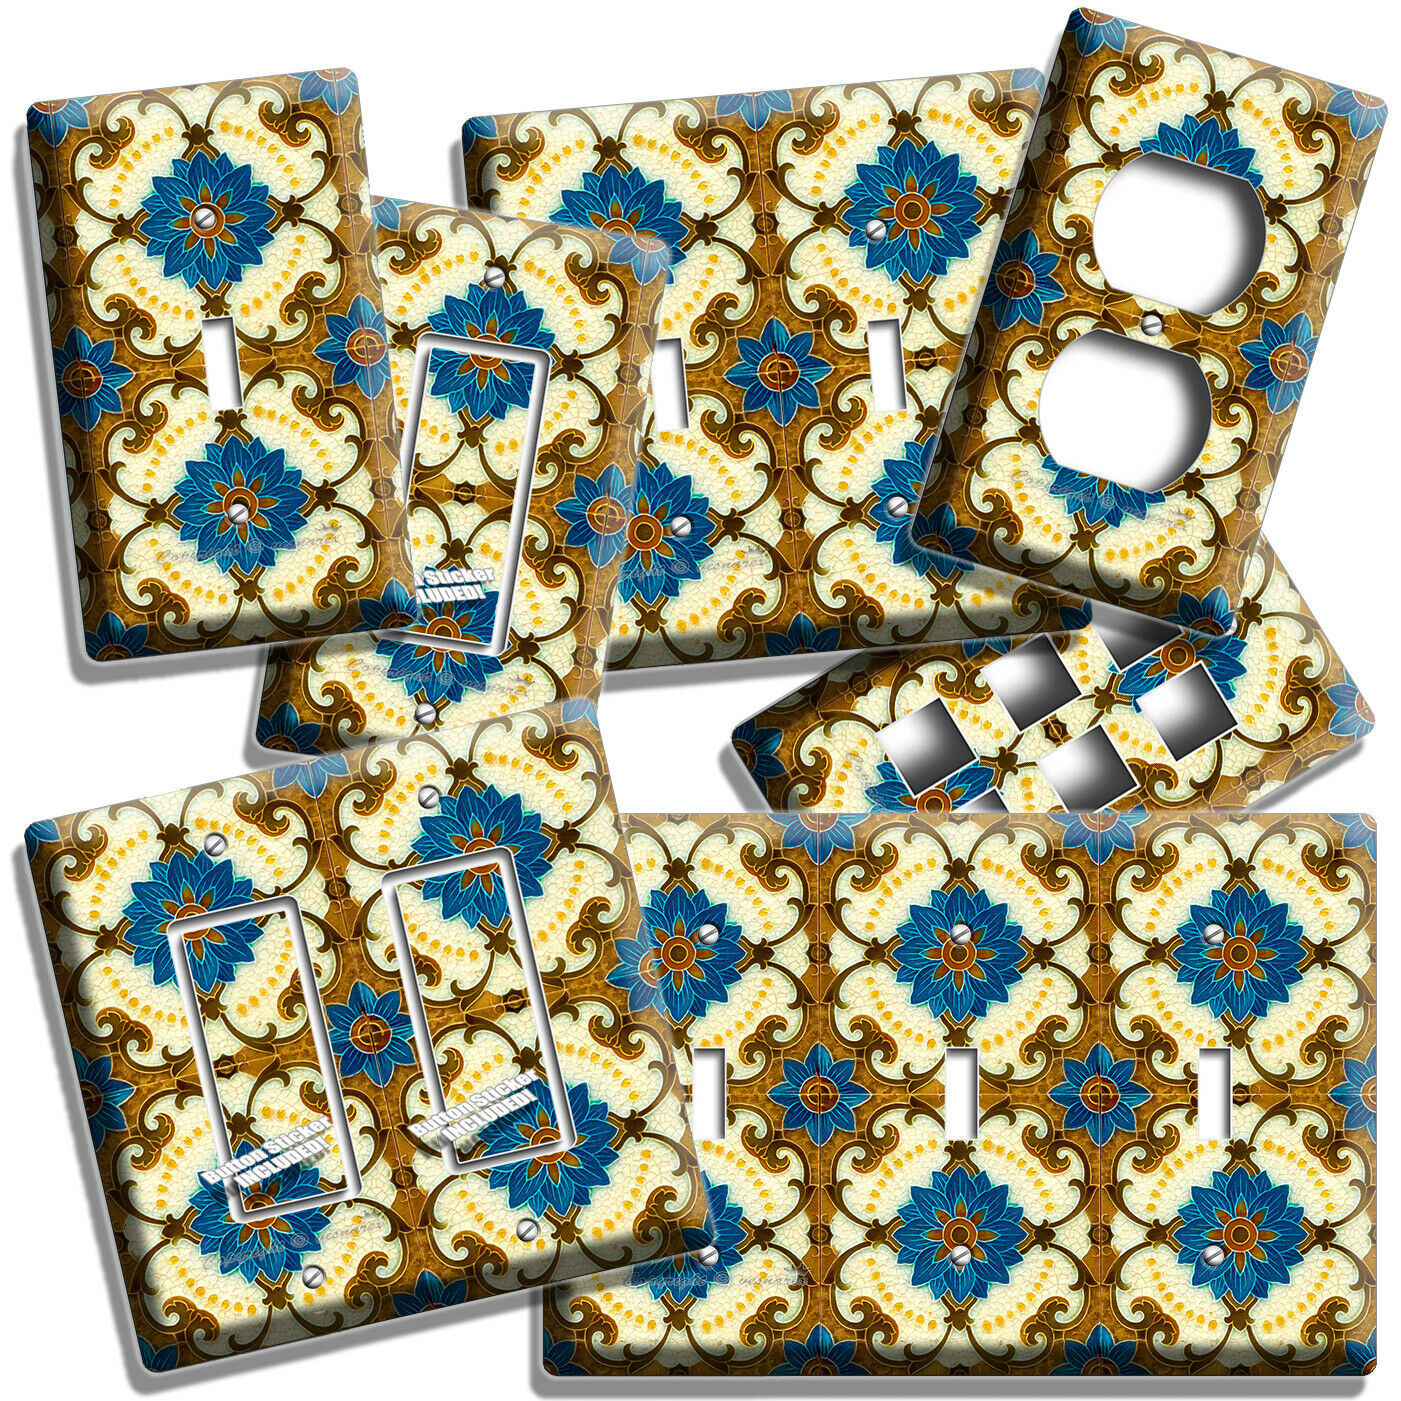 VICTORIAN MAJOLICA TILES LOOK LIGHT SWITCH OUTLET PLATES KITCHEN BATHROOM DECOR